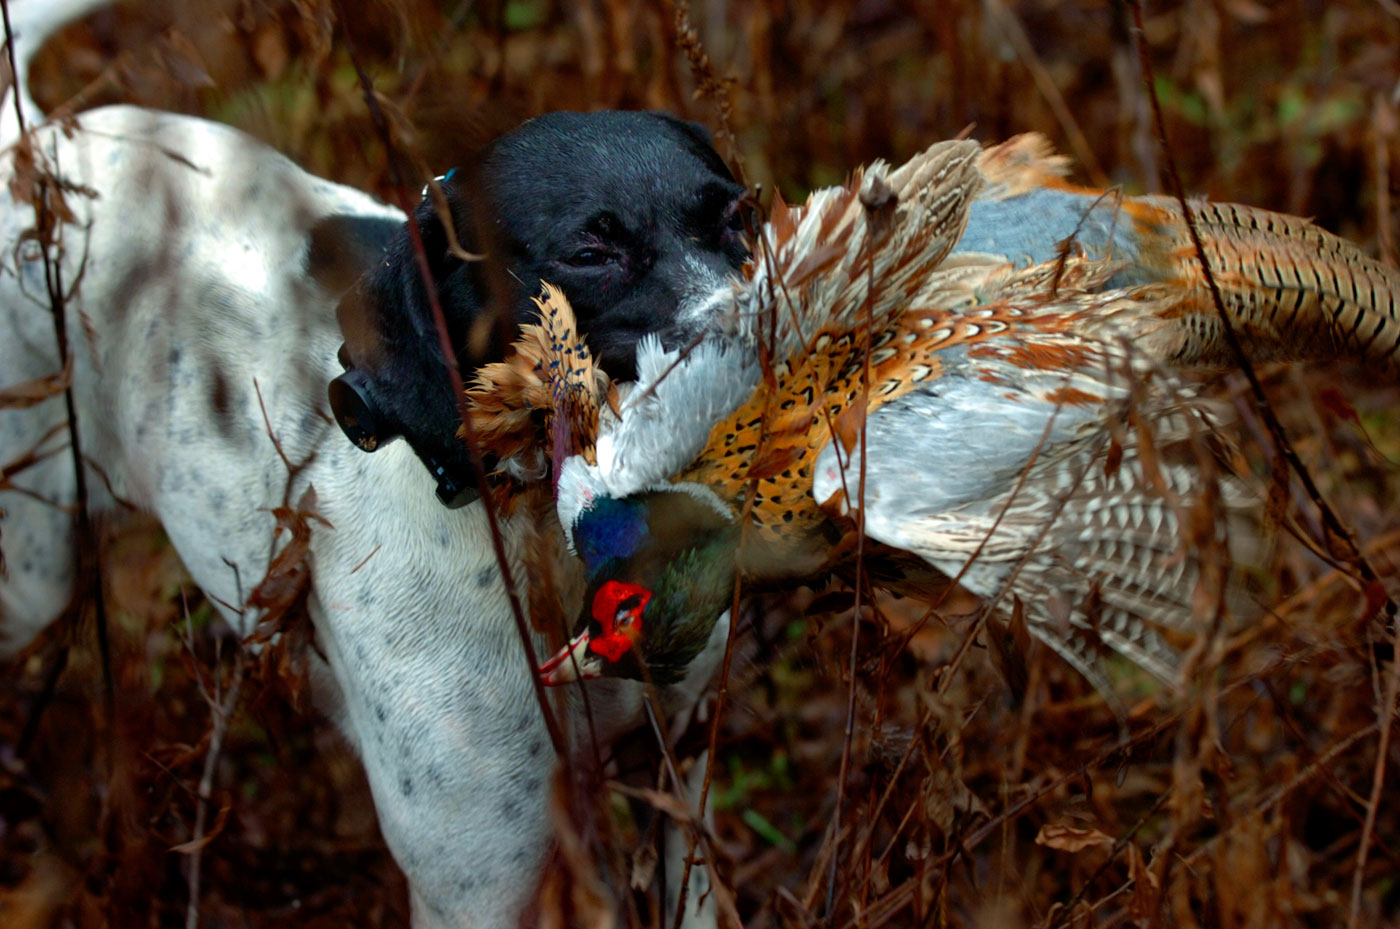 Dottie, an English Pointer, carries a pheasant back after it was shot. Dottie is owned by Bob Wahl of Suffield, who has hunted for more than 40 years. Wahl was out hunting with a few friends of his. {quote}Dottie is one of the best dogs I've owned - they say you own one great dog in your lifetime, and I think Dottie is going to be it (for him).{quote} Wahl spends roughly 15 hours a week, 40 weeks of the year, training the dog to point birds such as pheasants and woodcocks. It is in many ways, an art form for Wahl.